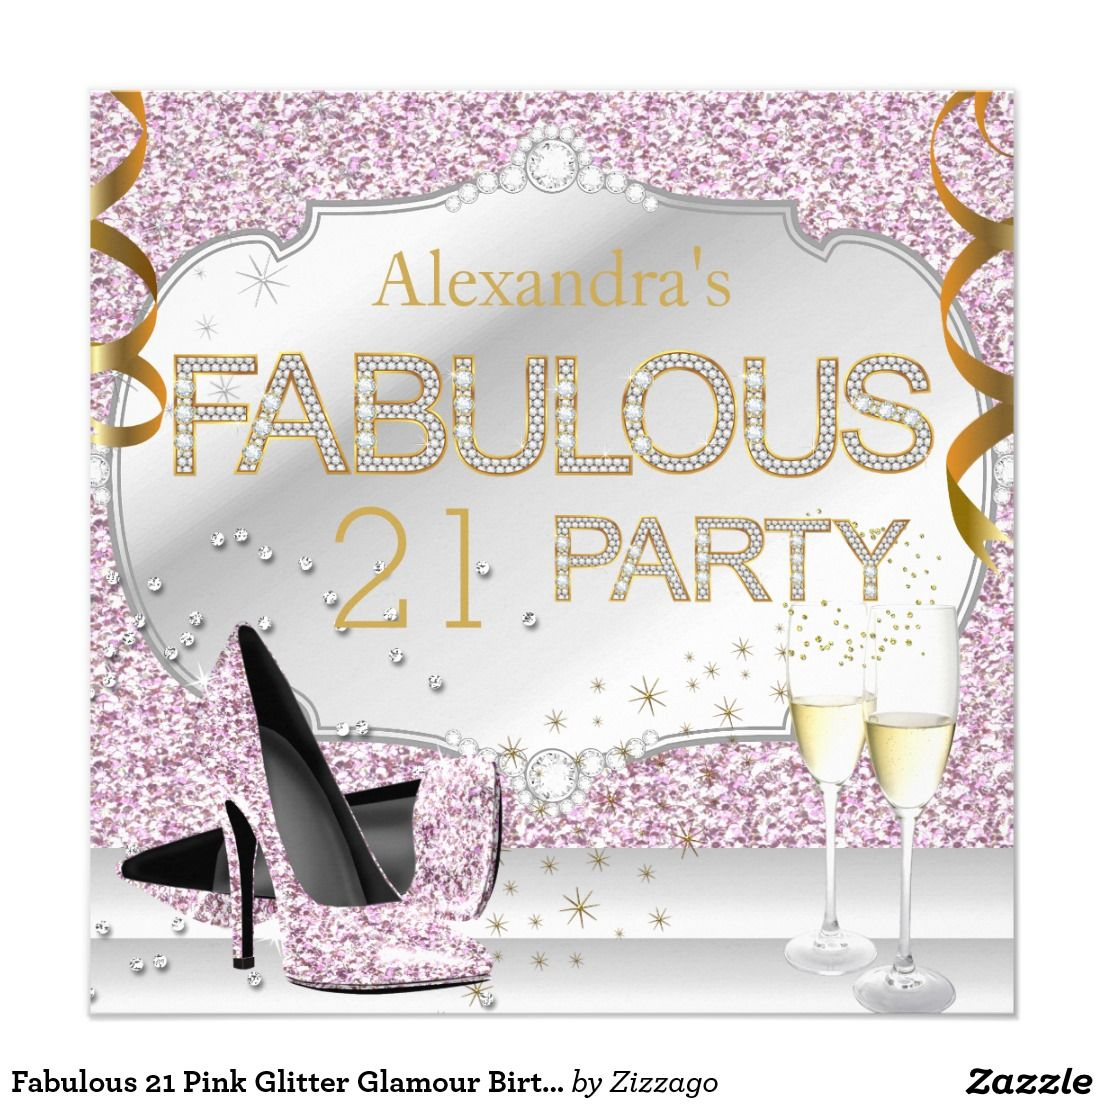 Fabulous 21 Pink Glitter Glamour Birthday Party Invitation | Pink ...